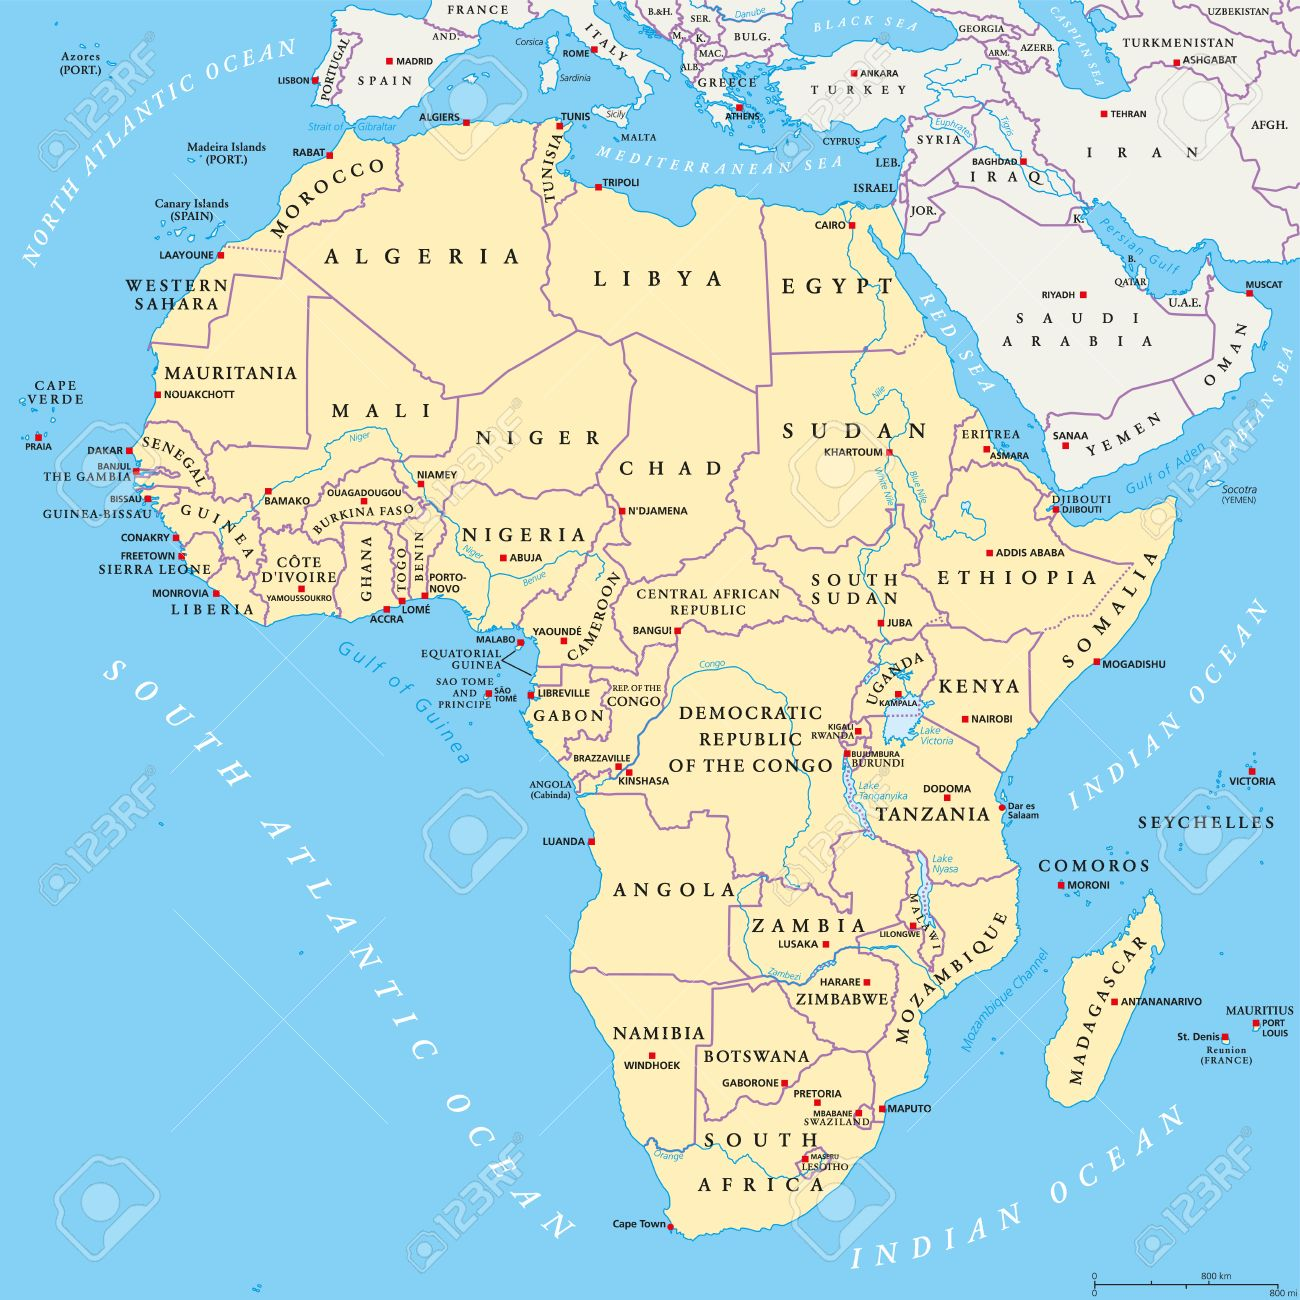 World oceans and seas map oceans and seas map of the world best africa political map with capitals national borders rivers and world map with oceans seas and gumiabroncs Gallery